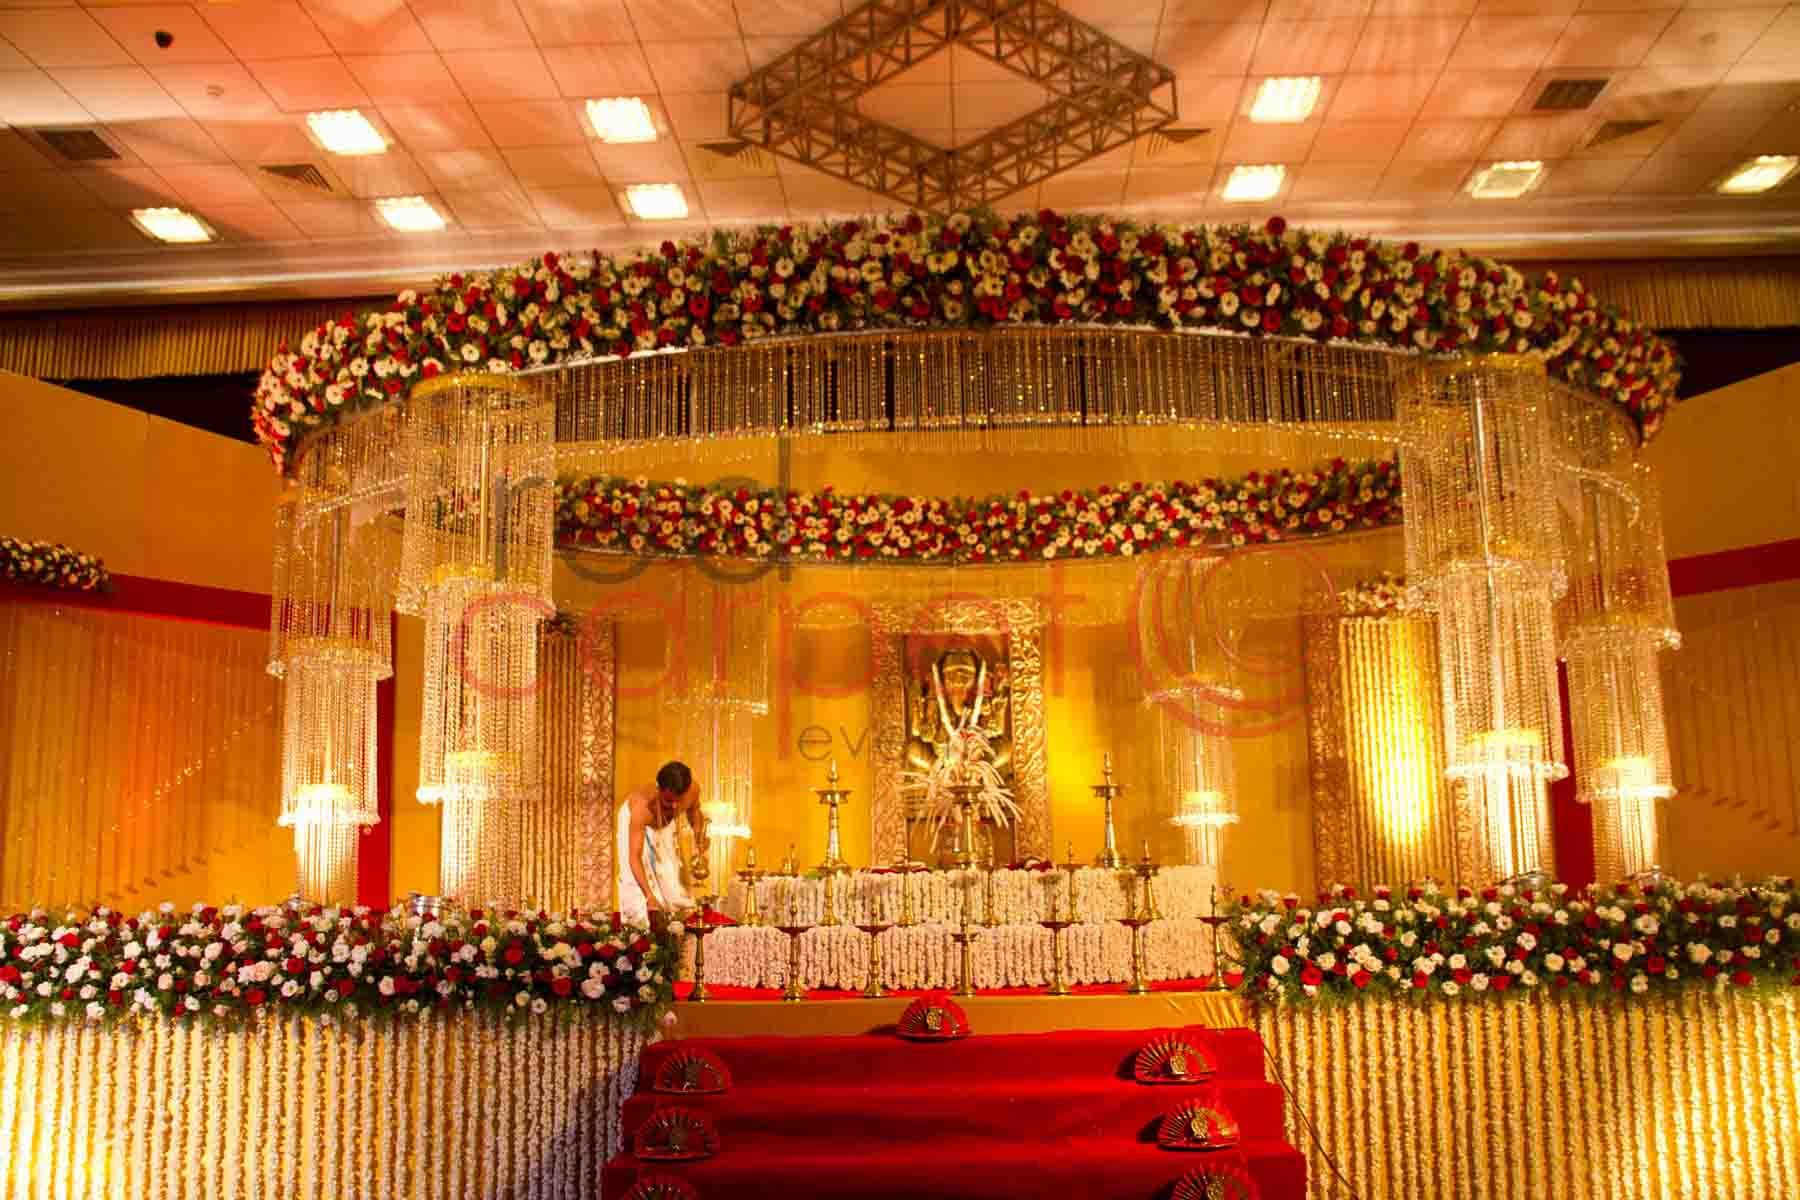 India wedding decor red carpet events wedding stages india wedding decor junglespirit Image collections